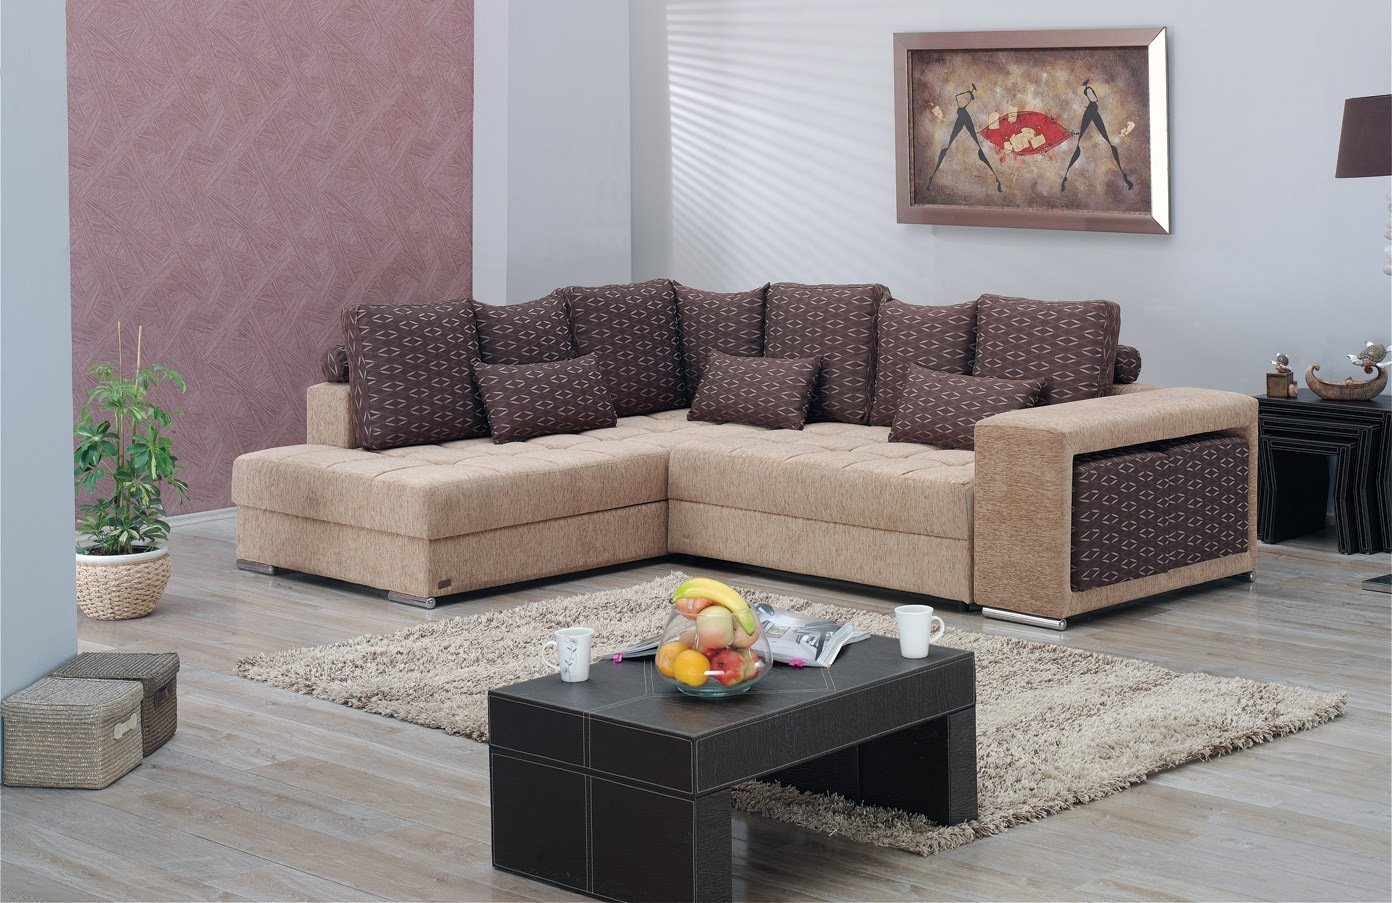 Los Angeles Sectional Sofa Setempire Furniture Usa Pertaining To Famous Los Angeles Sectional Sofas (View 5 of 15)